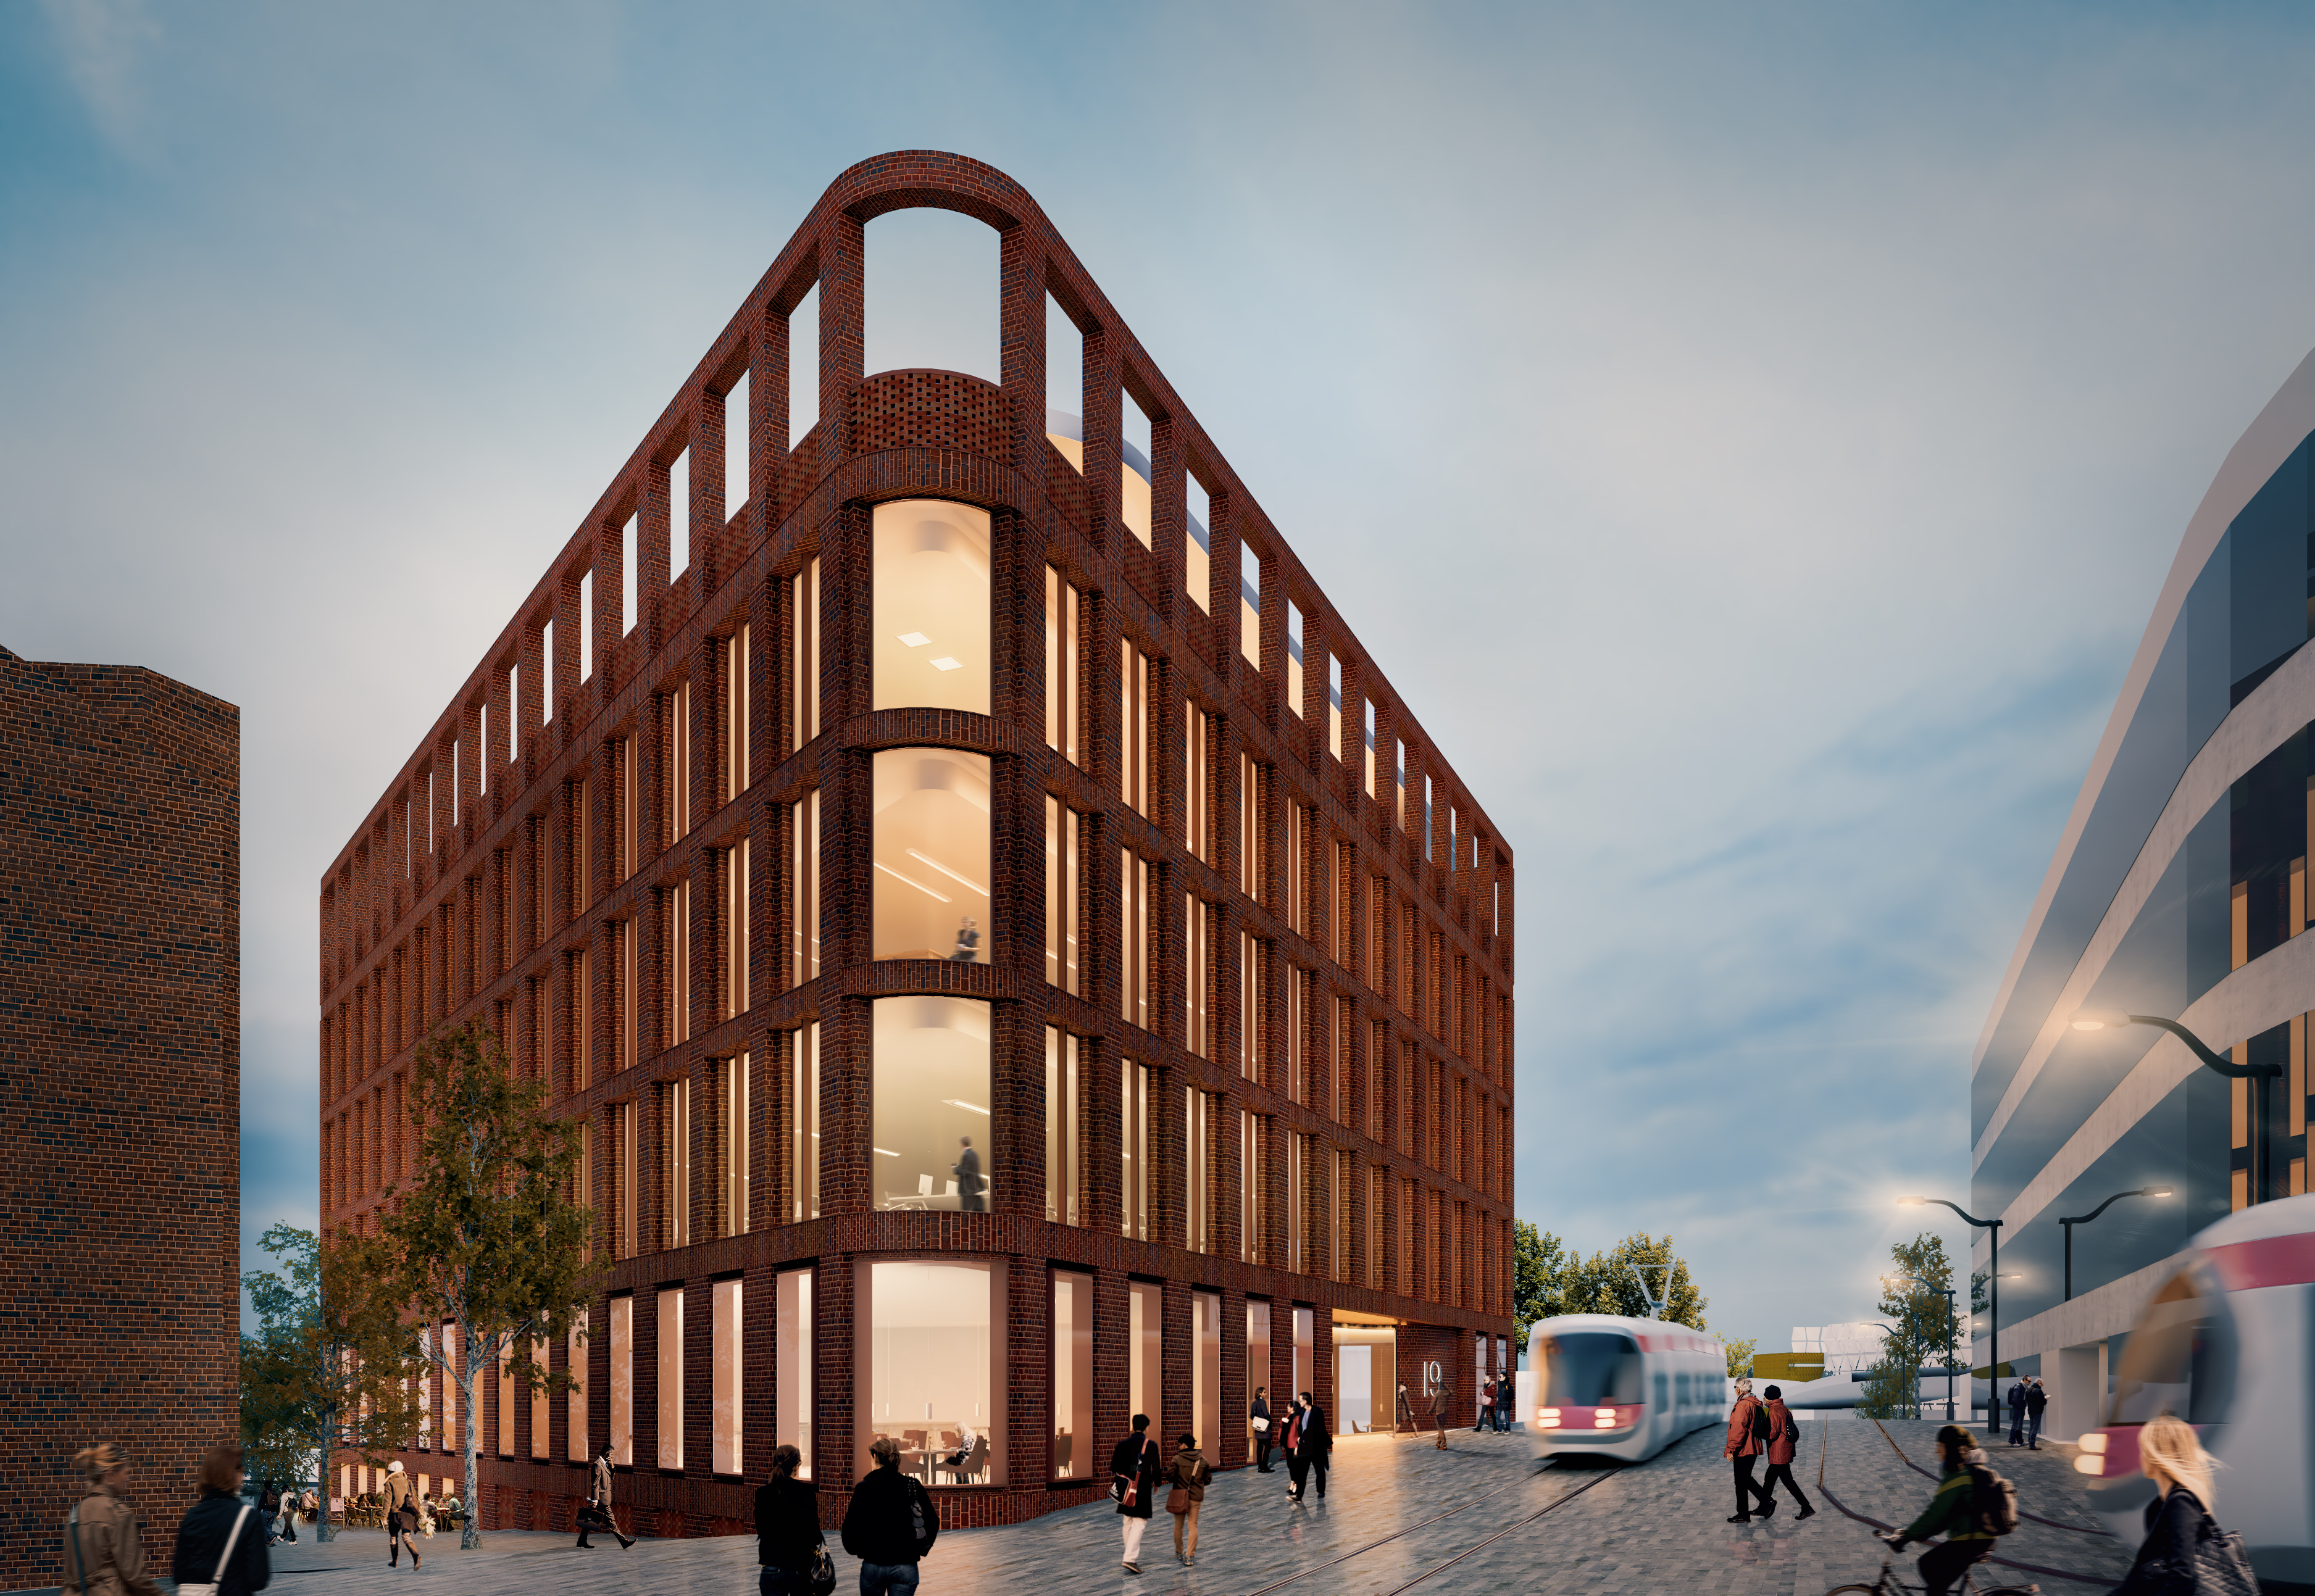 Property developers, Ion showcase plans for i9 to Wolverhampton